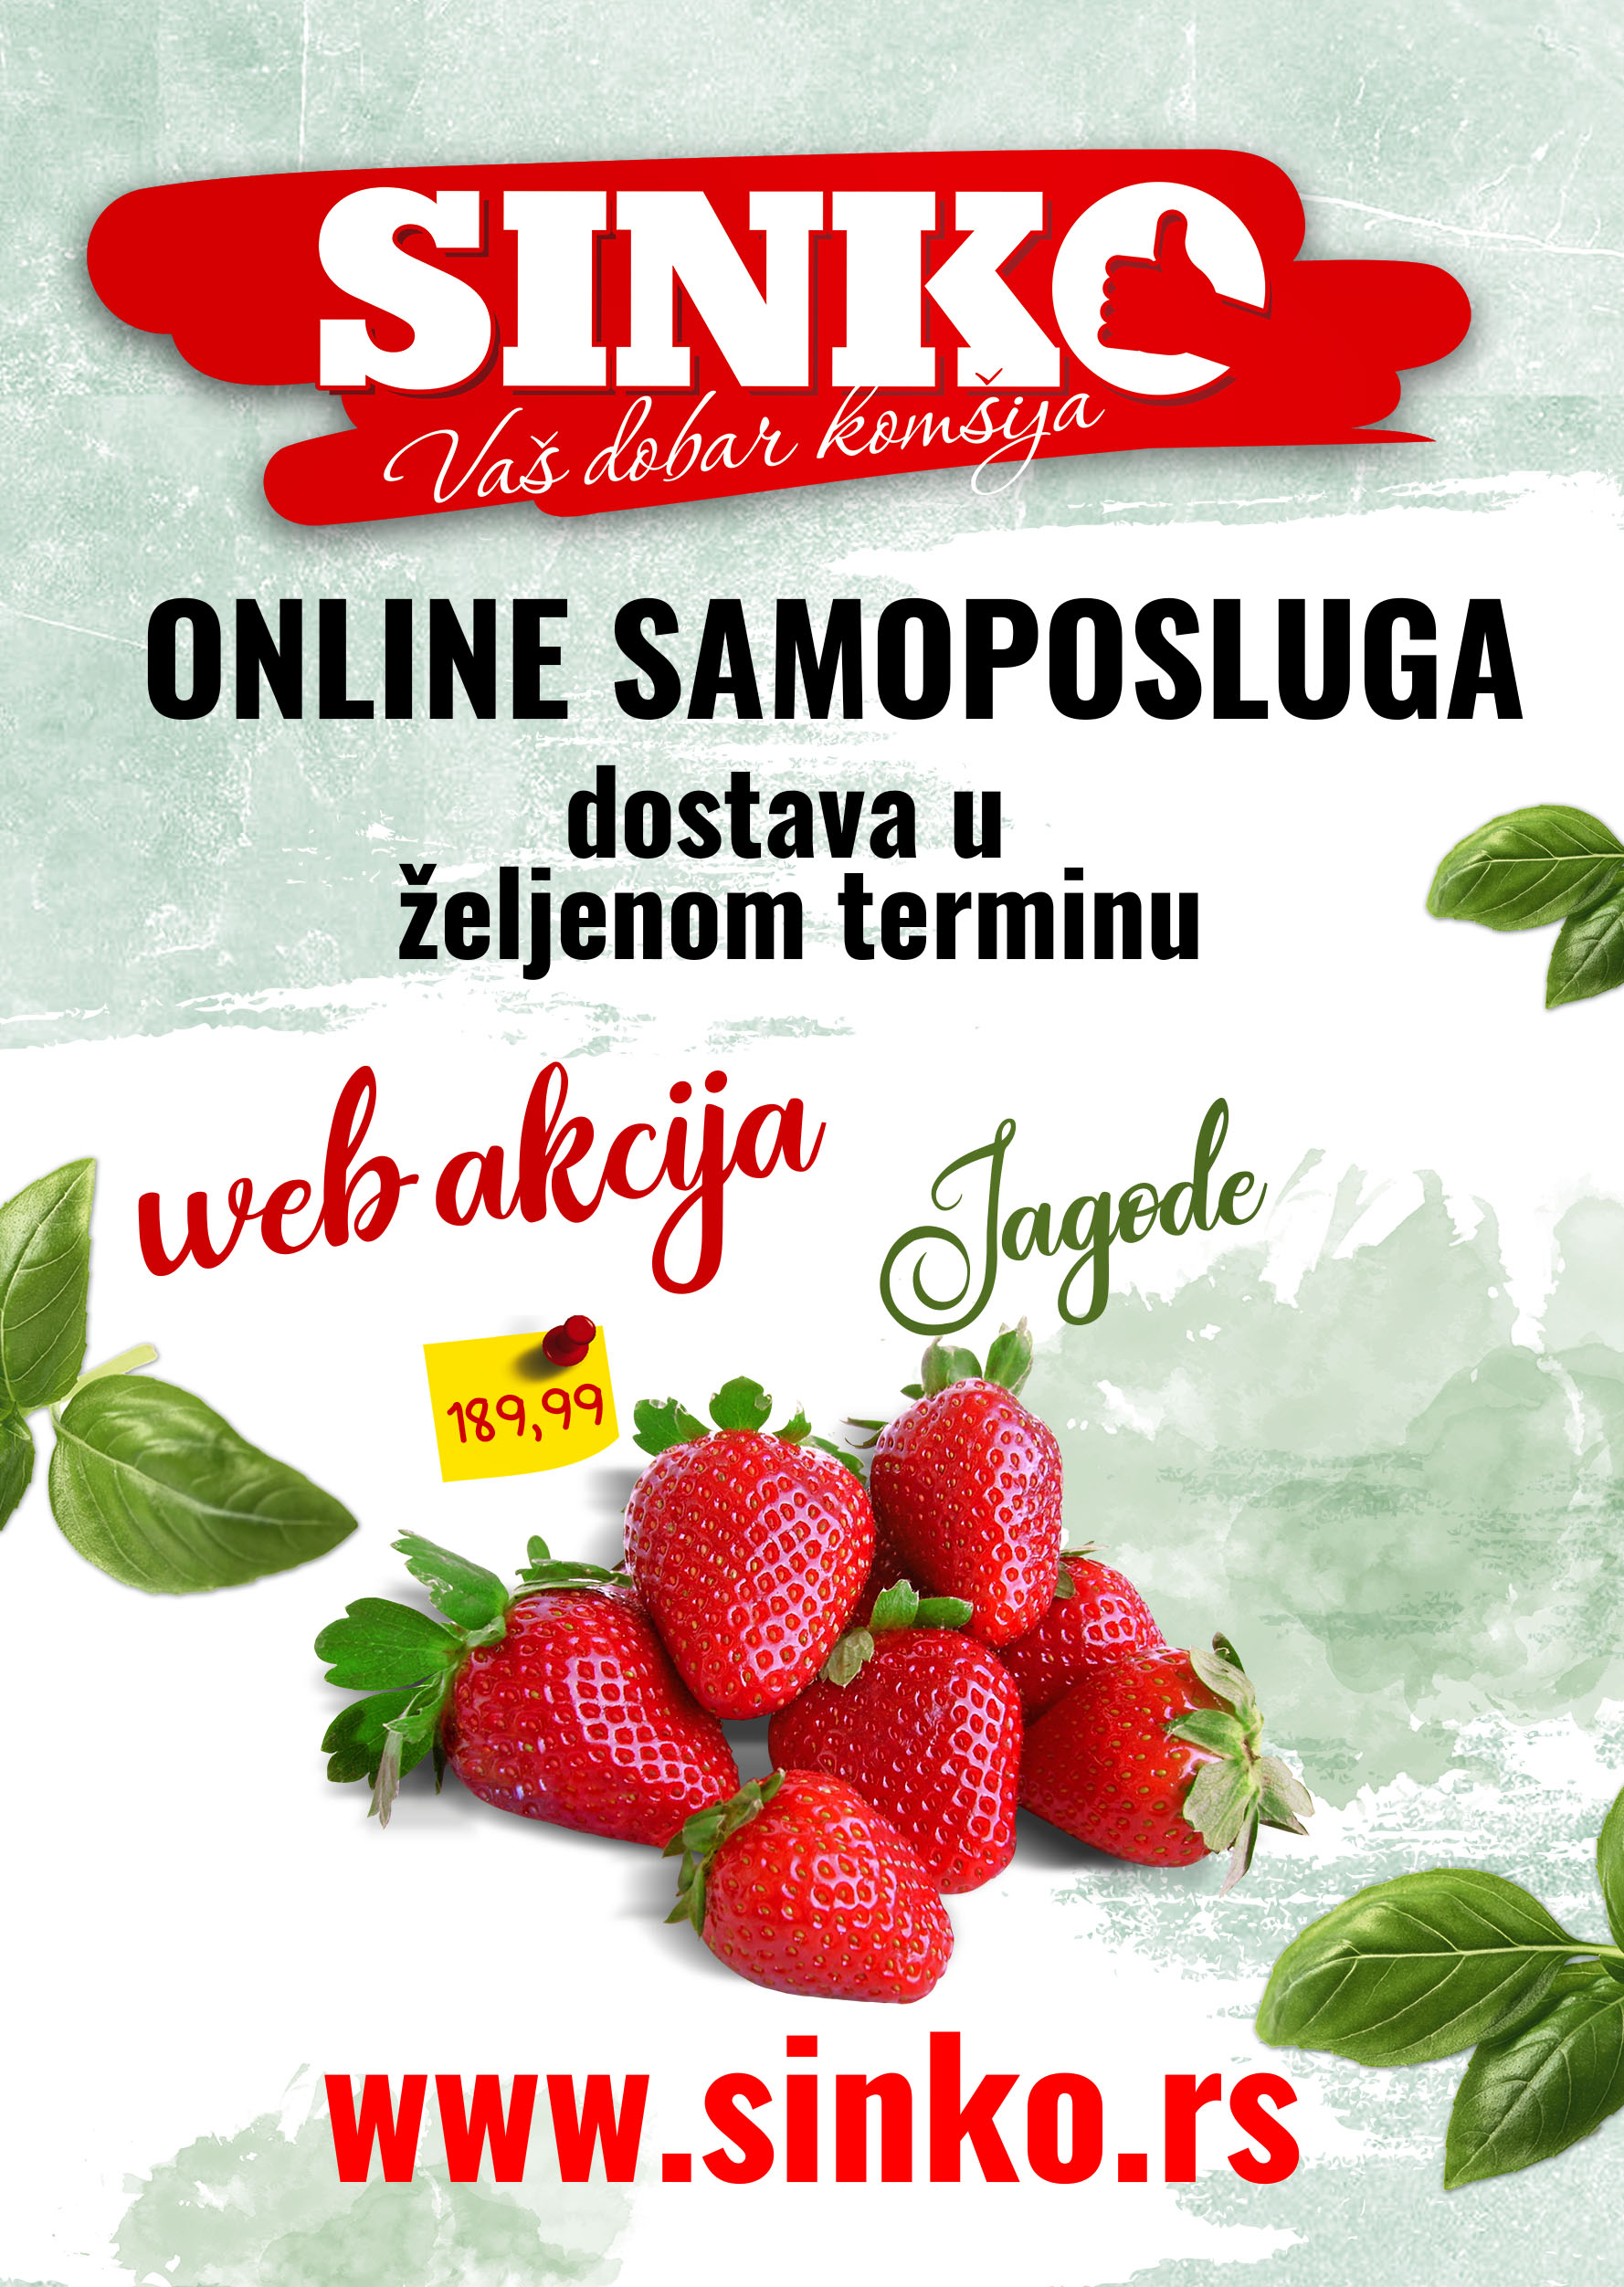 https://www.sinko.rs/images/banners/44.jpg